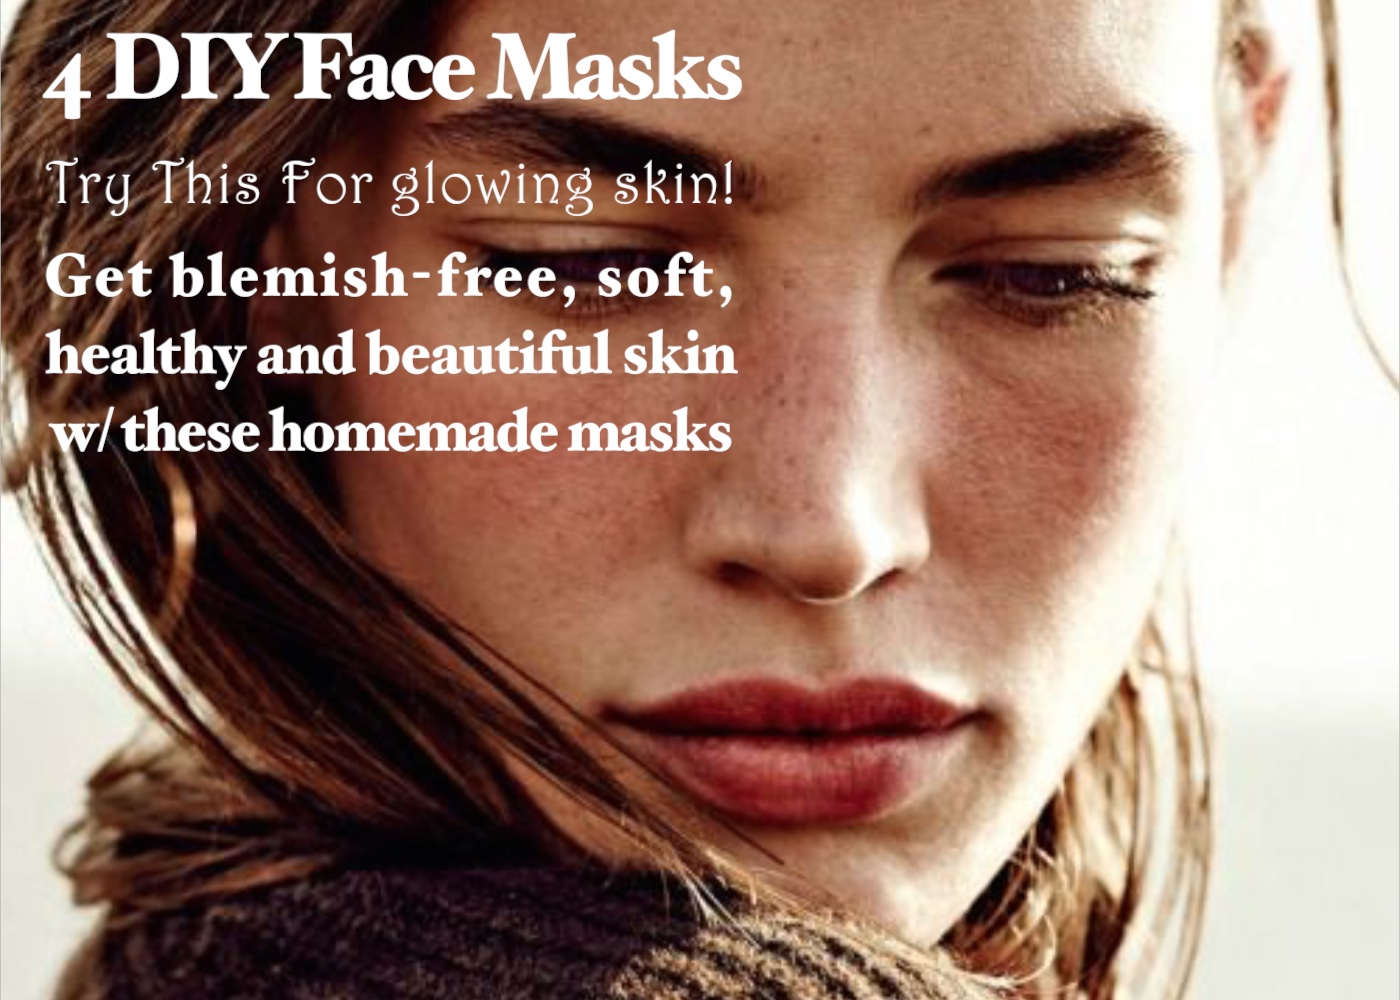 4 Diy Face Masks For Glowing Skin That You Can Make At Home Nubry